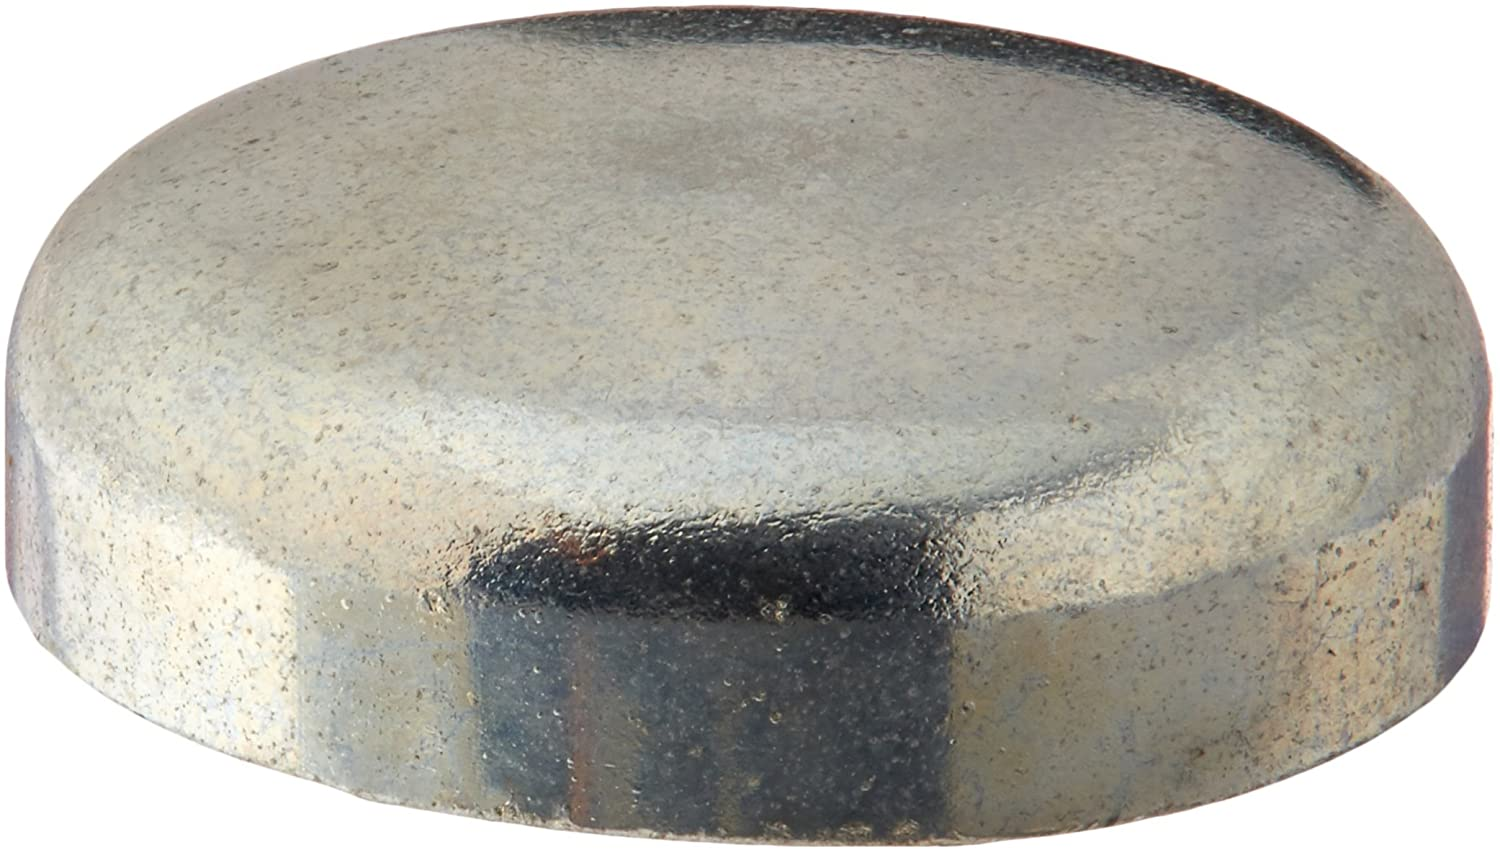 Dorman - Autograde 555-006 Steel Cup Expansion Plug 1/2 In. SC Height 0.180